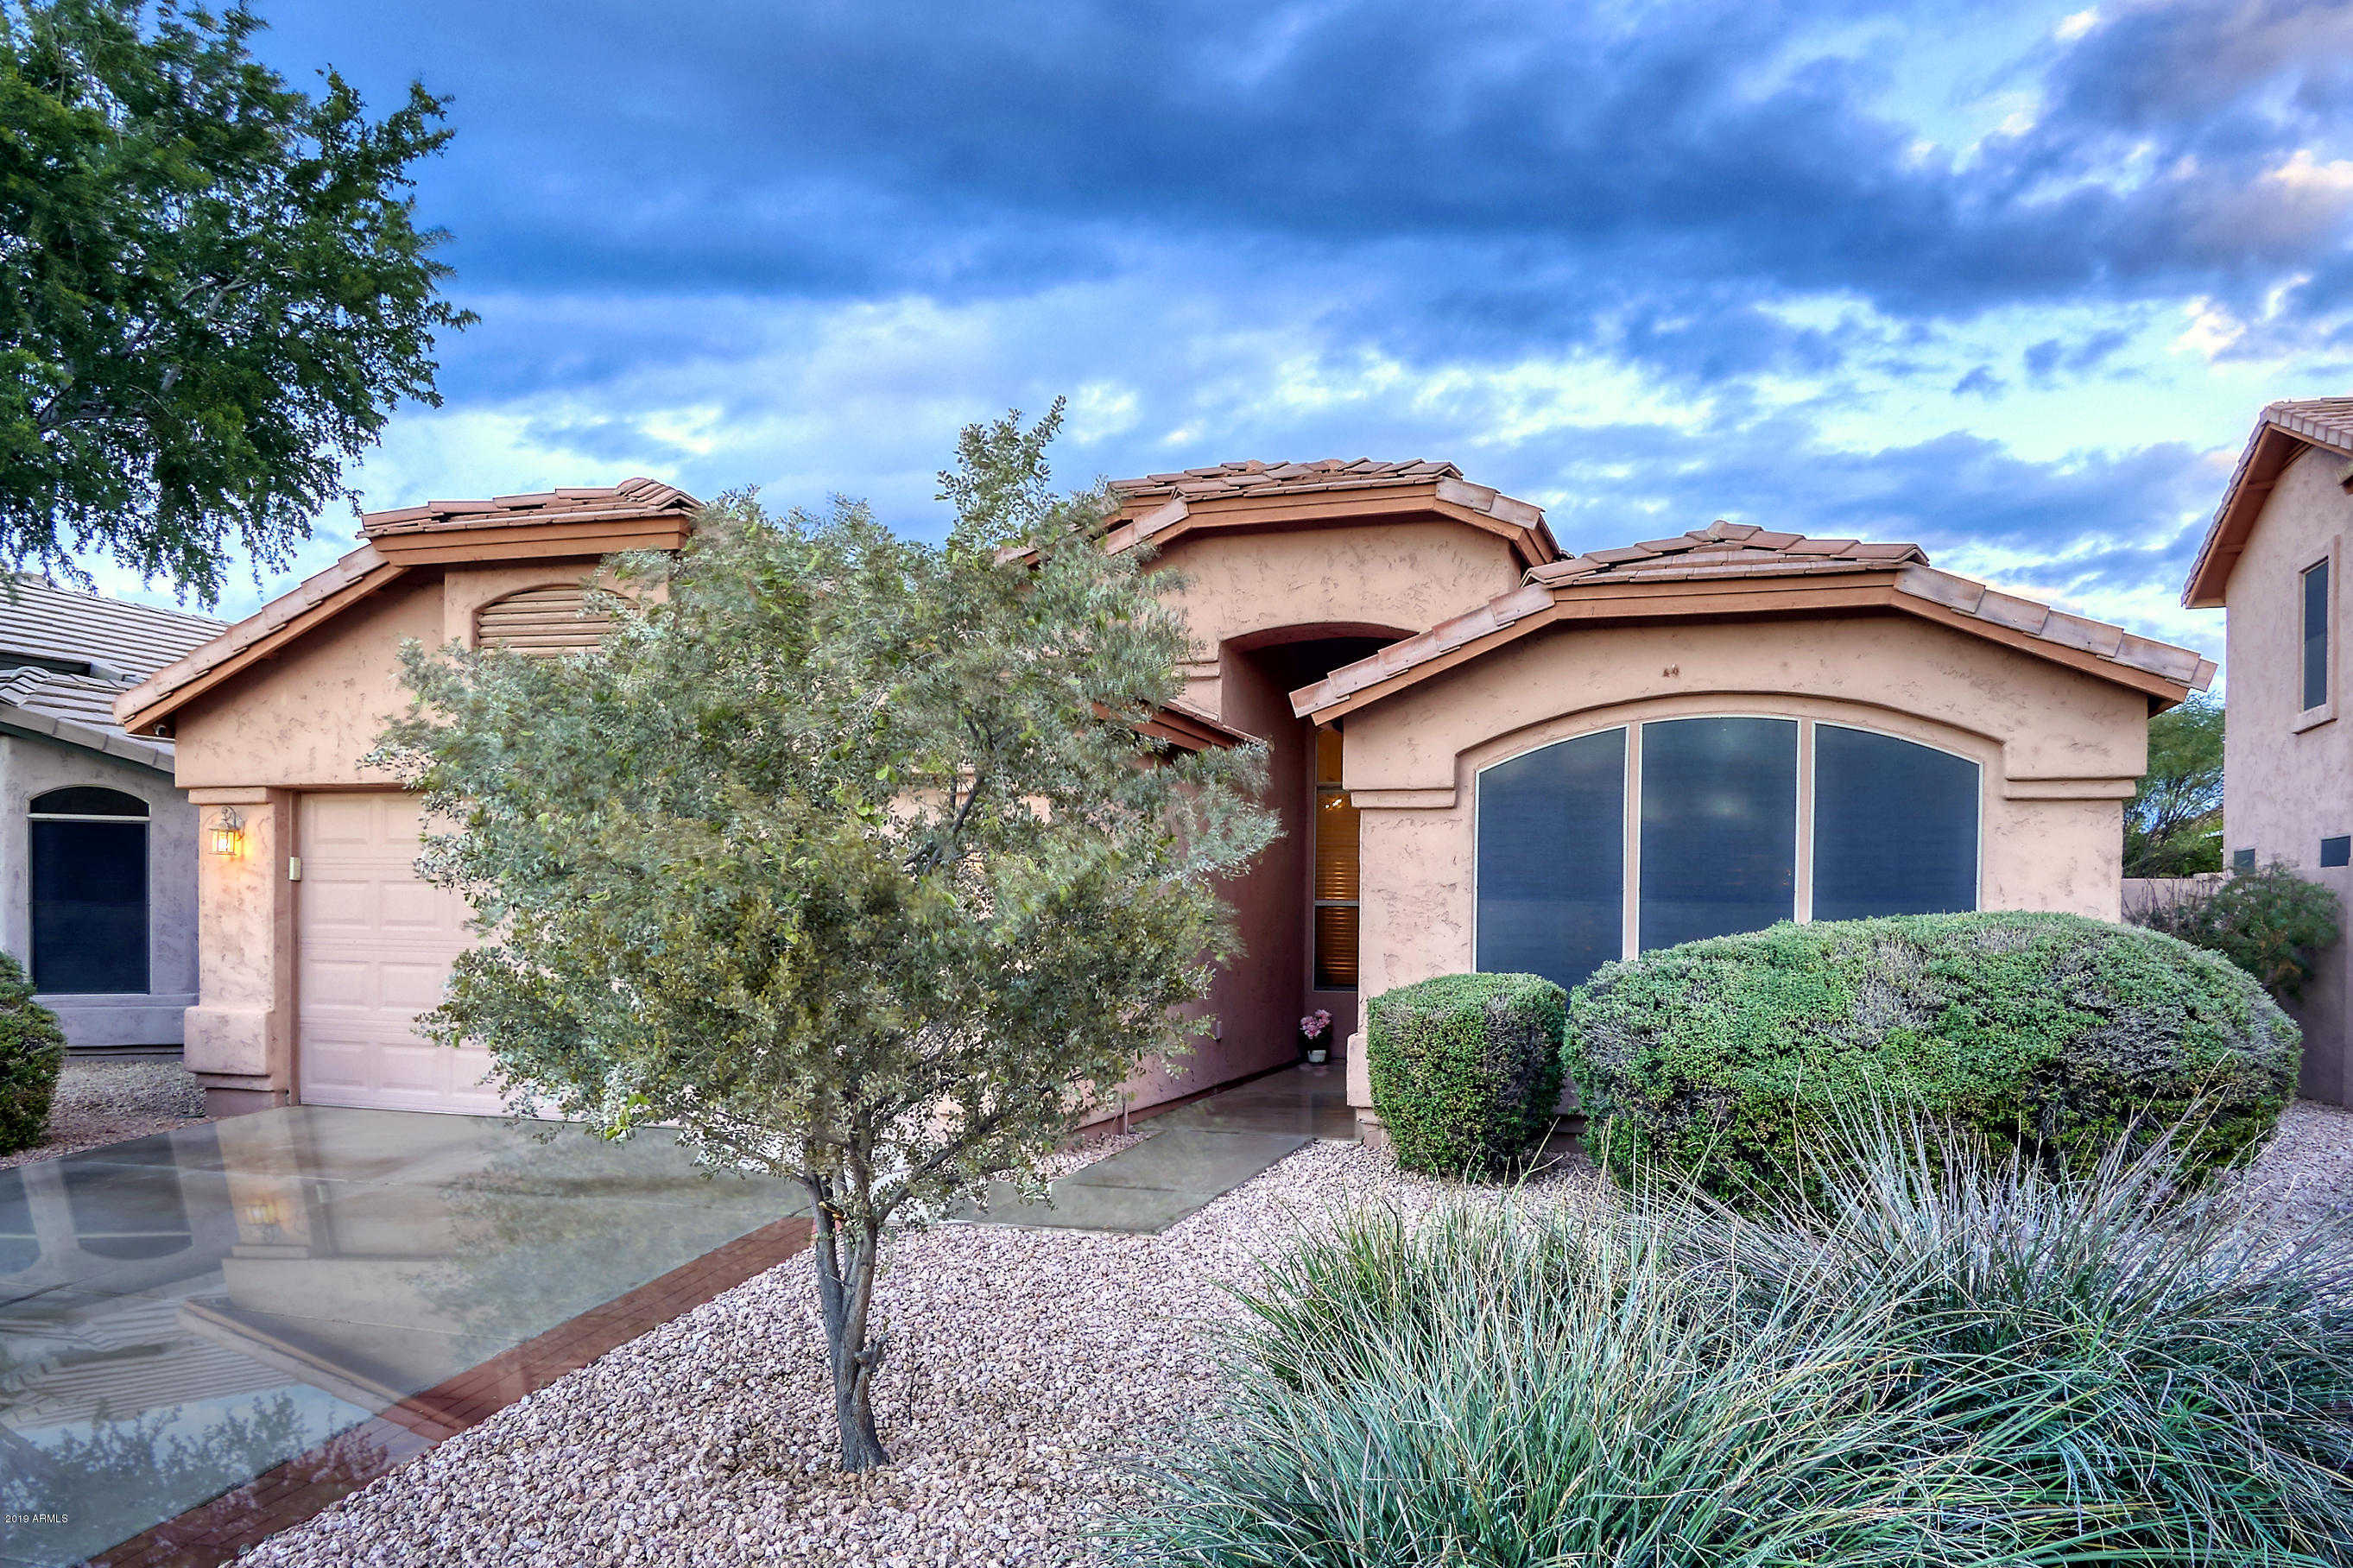 $405,000 - 4Br/2Ba - Home for Sale in Desert Ridge Parcel 7.9, Phoenix